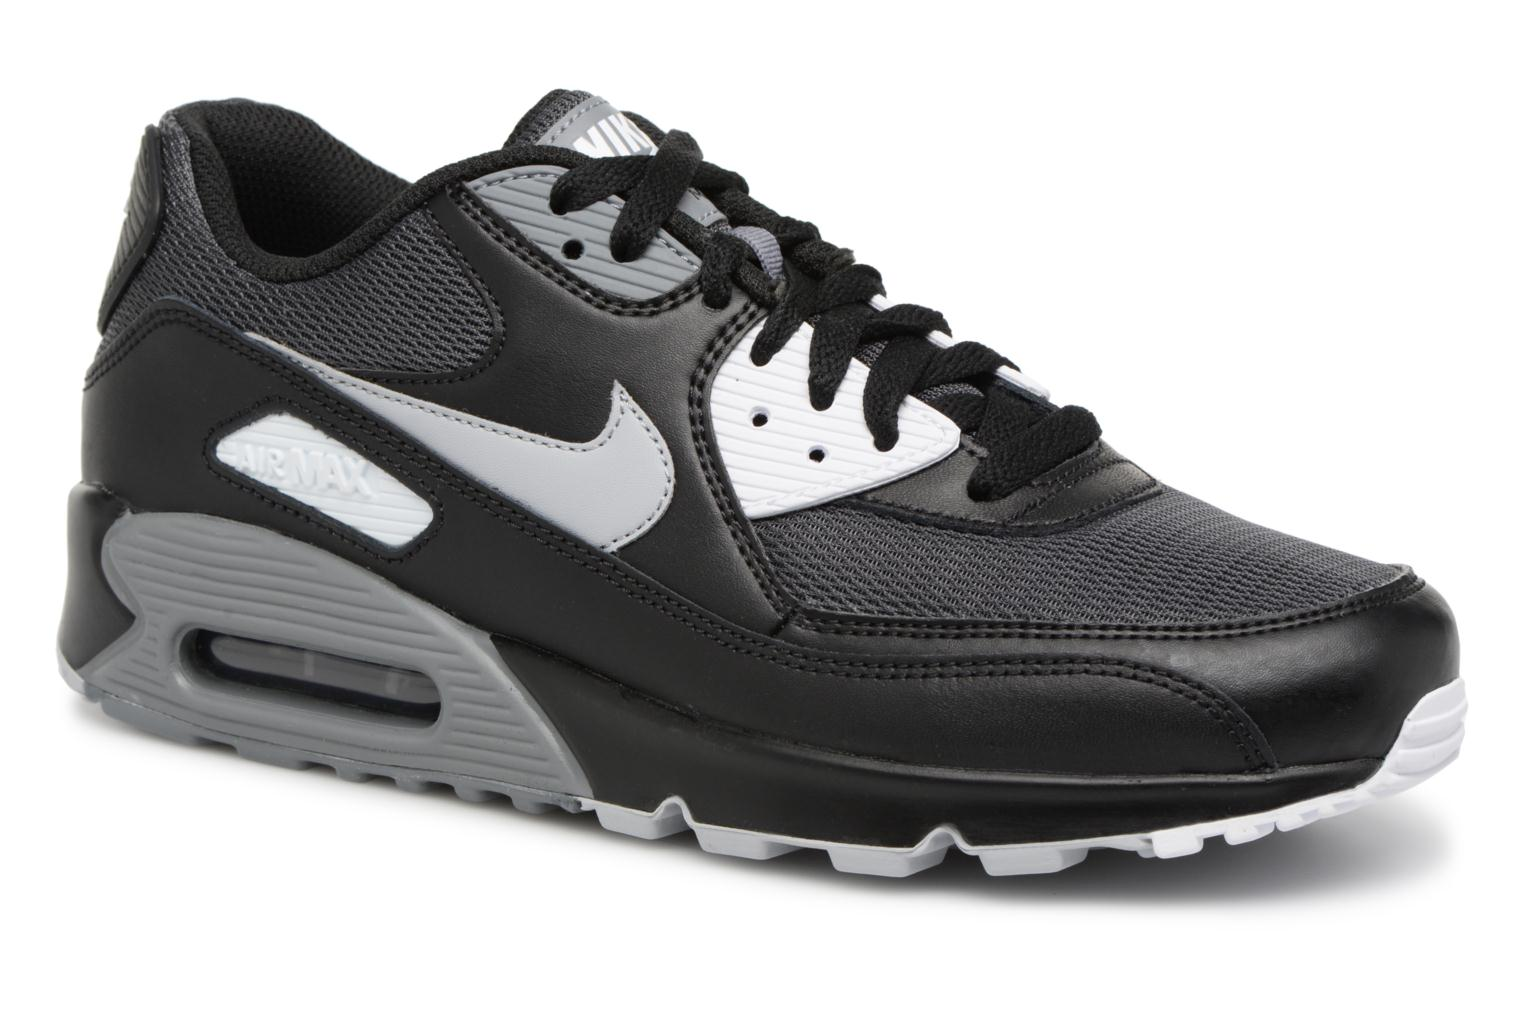 online store a93f5 40590 ... coupon trainers nike nike air max 90 essential black detailed view pair  view 6775a 15317